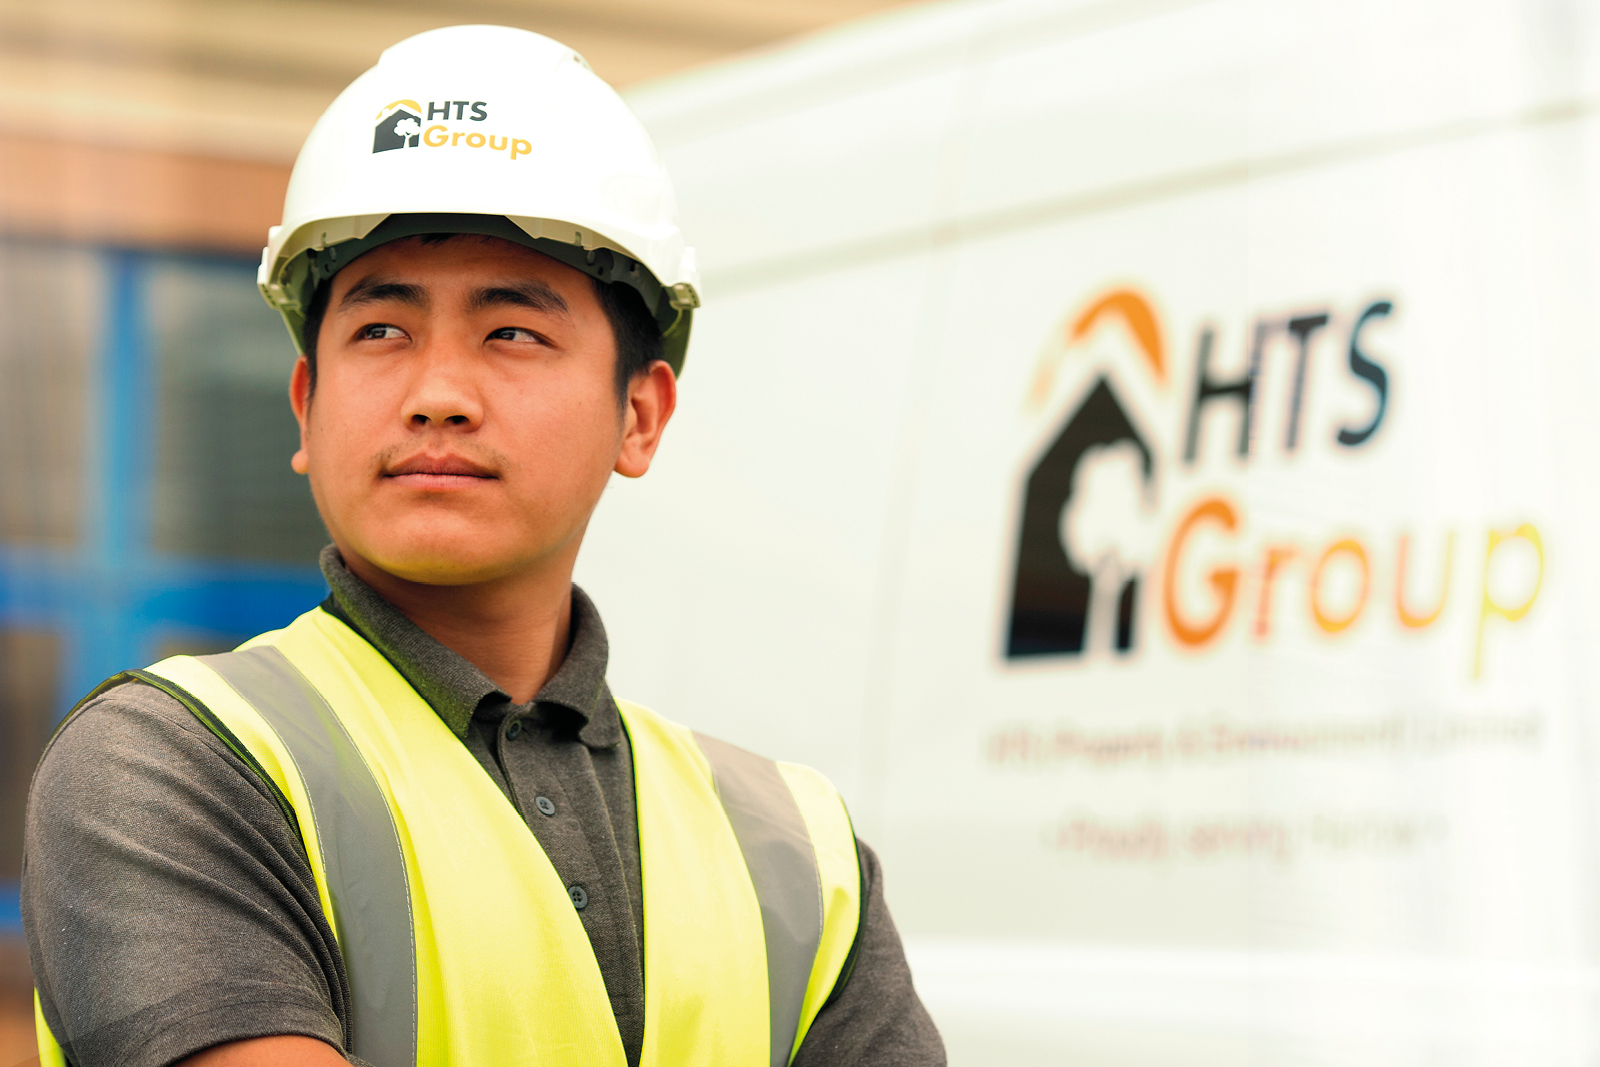 Photography for HTS Group, Harlow